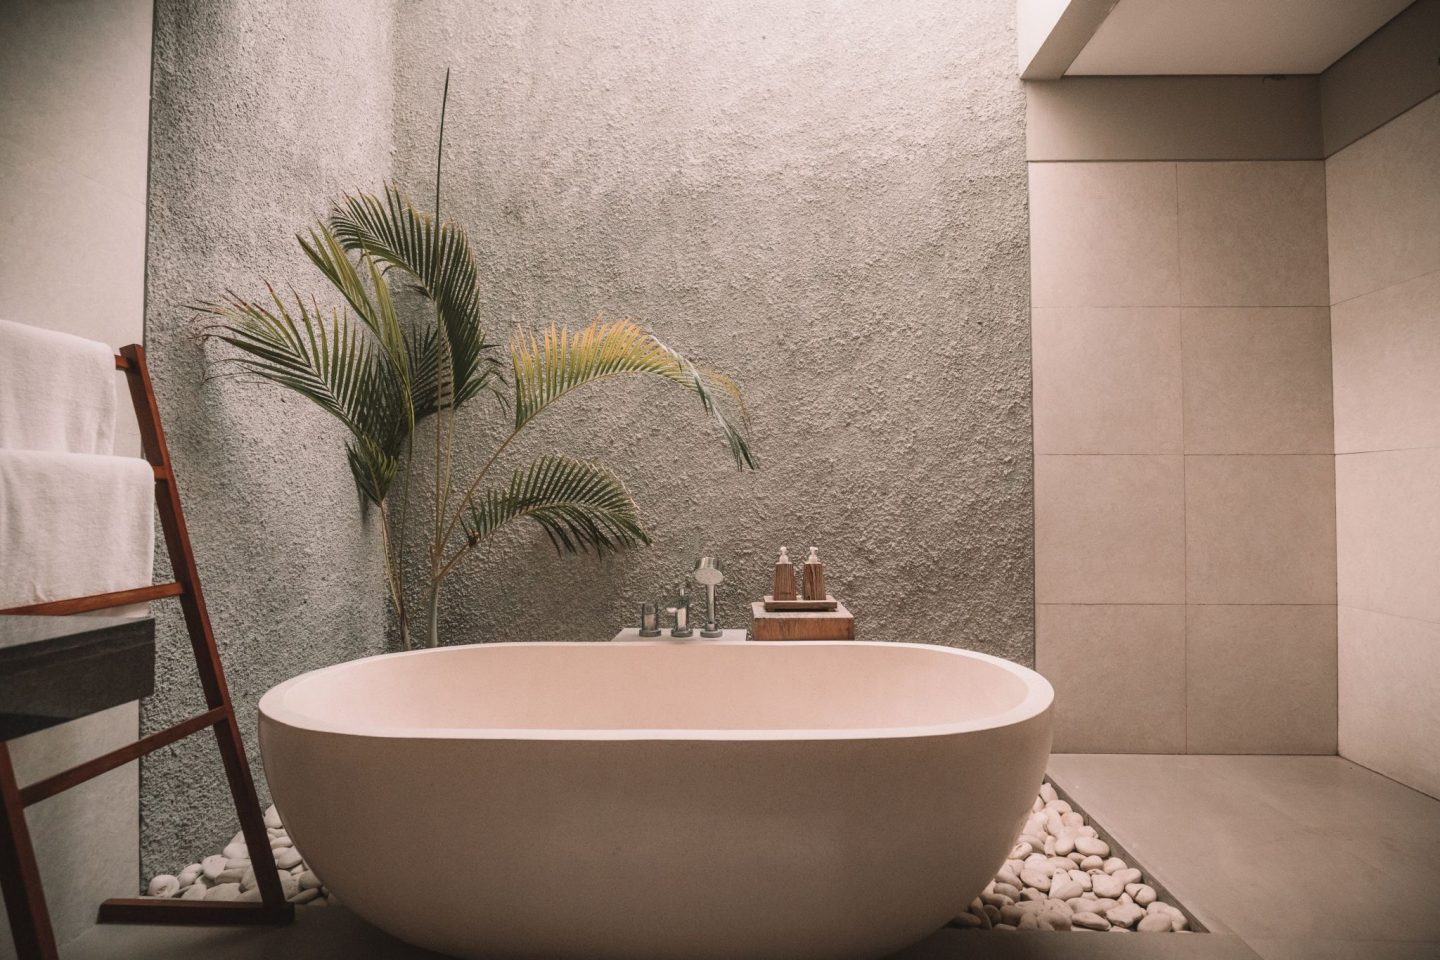 5 THINGS THAT COMPLETE YOUR HOME SPA EXPERIENCE